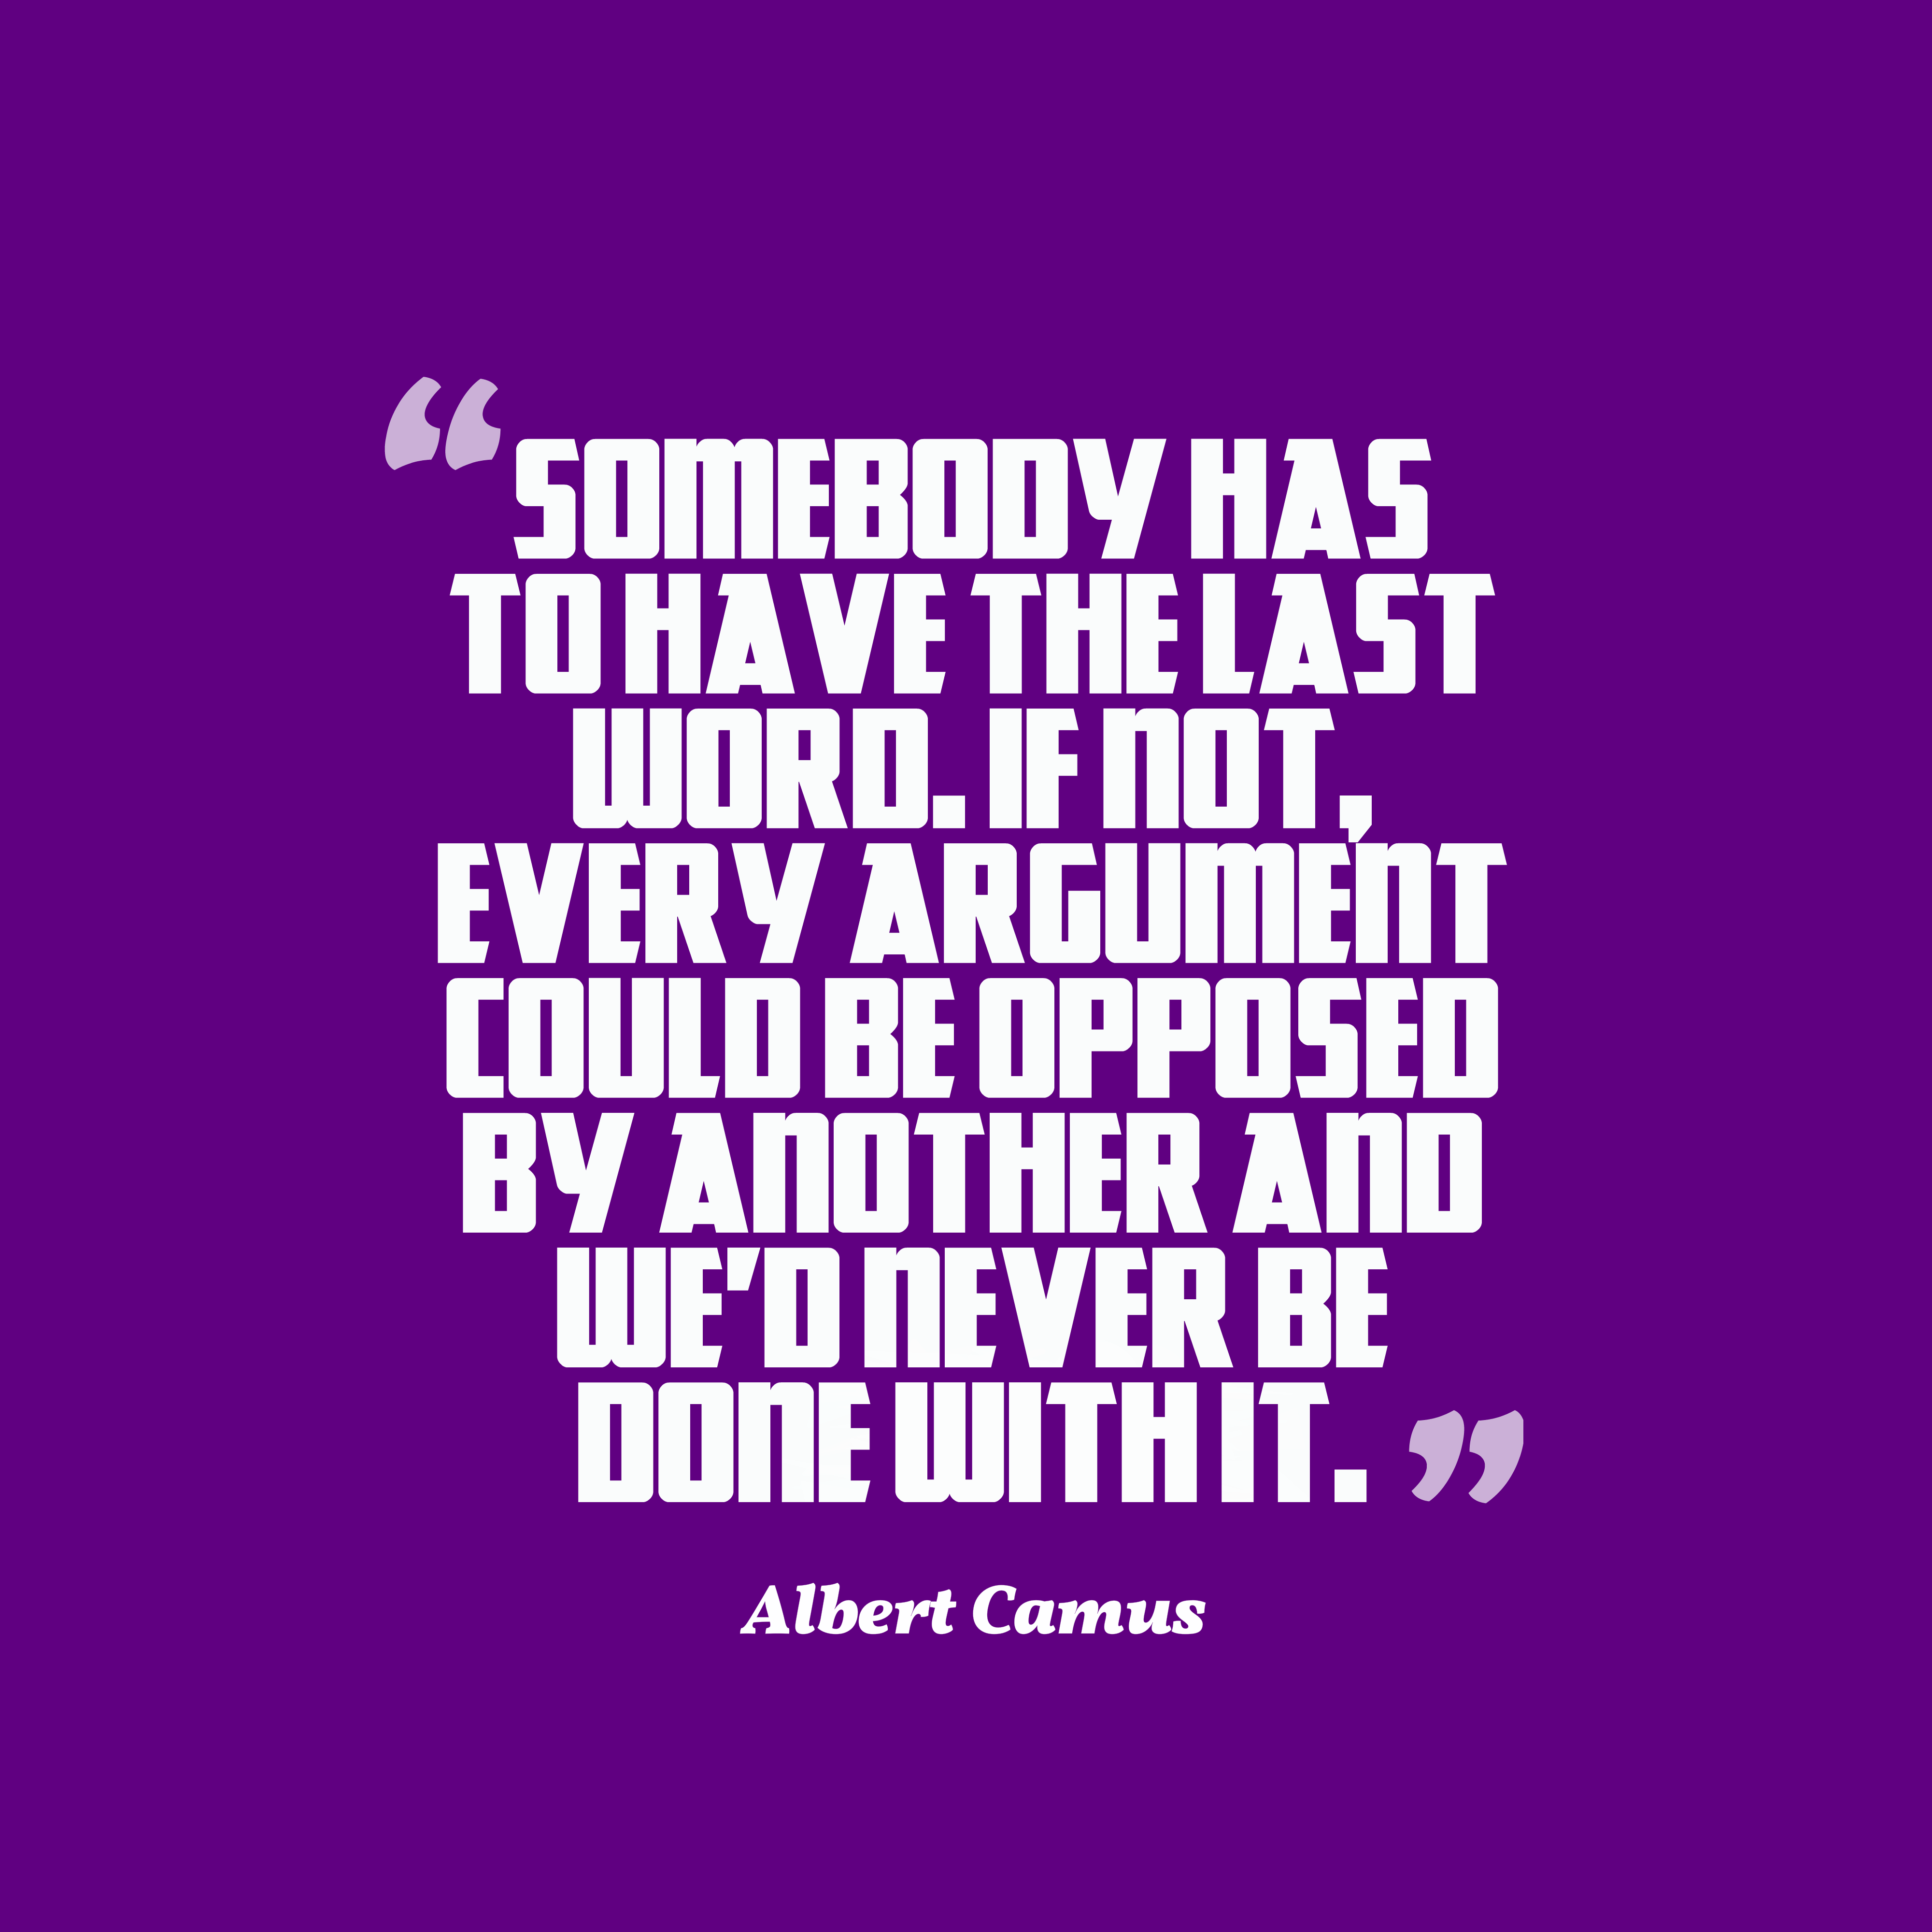 Quotes image of Somebody has to have the last word. If not, every argument could be opposed by another and we'd never be done with it.